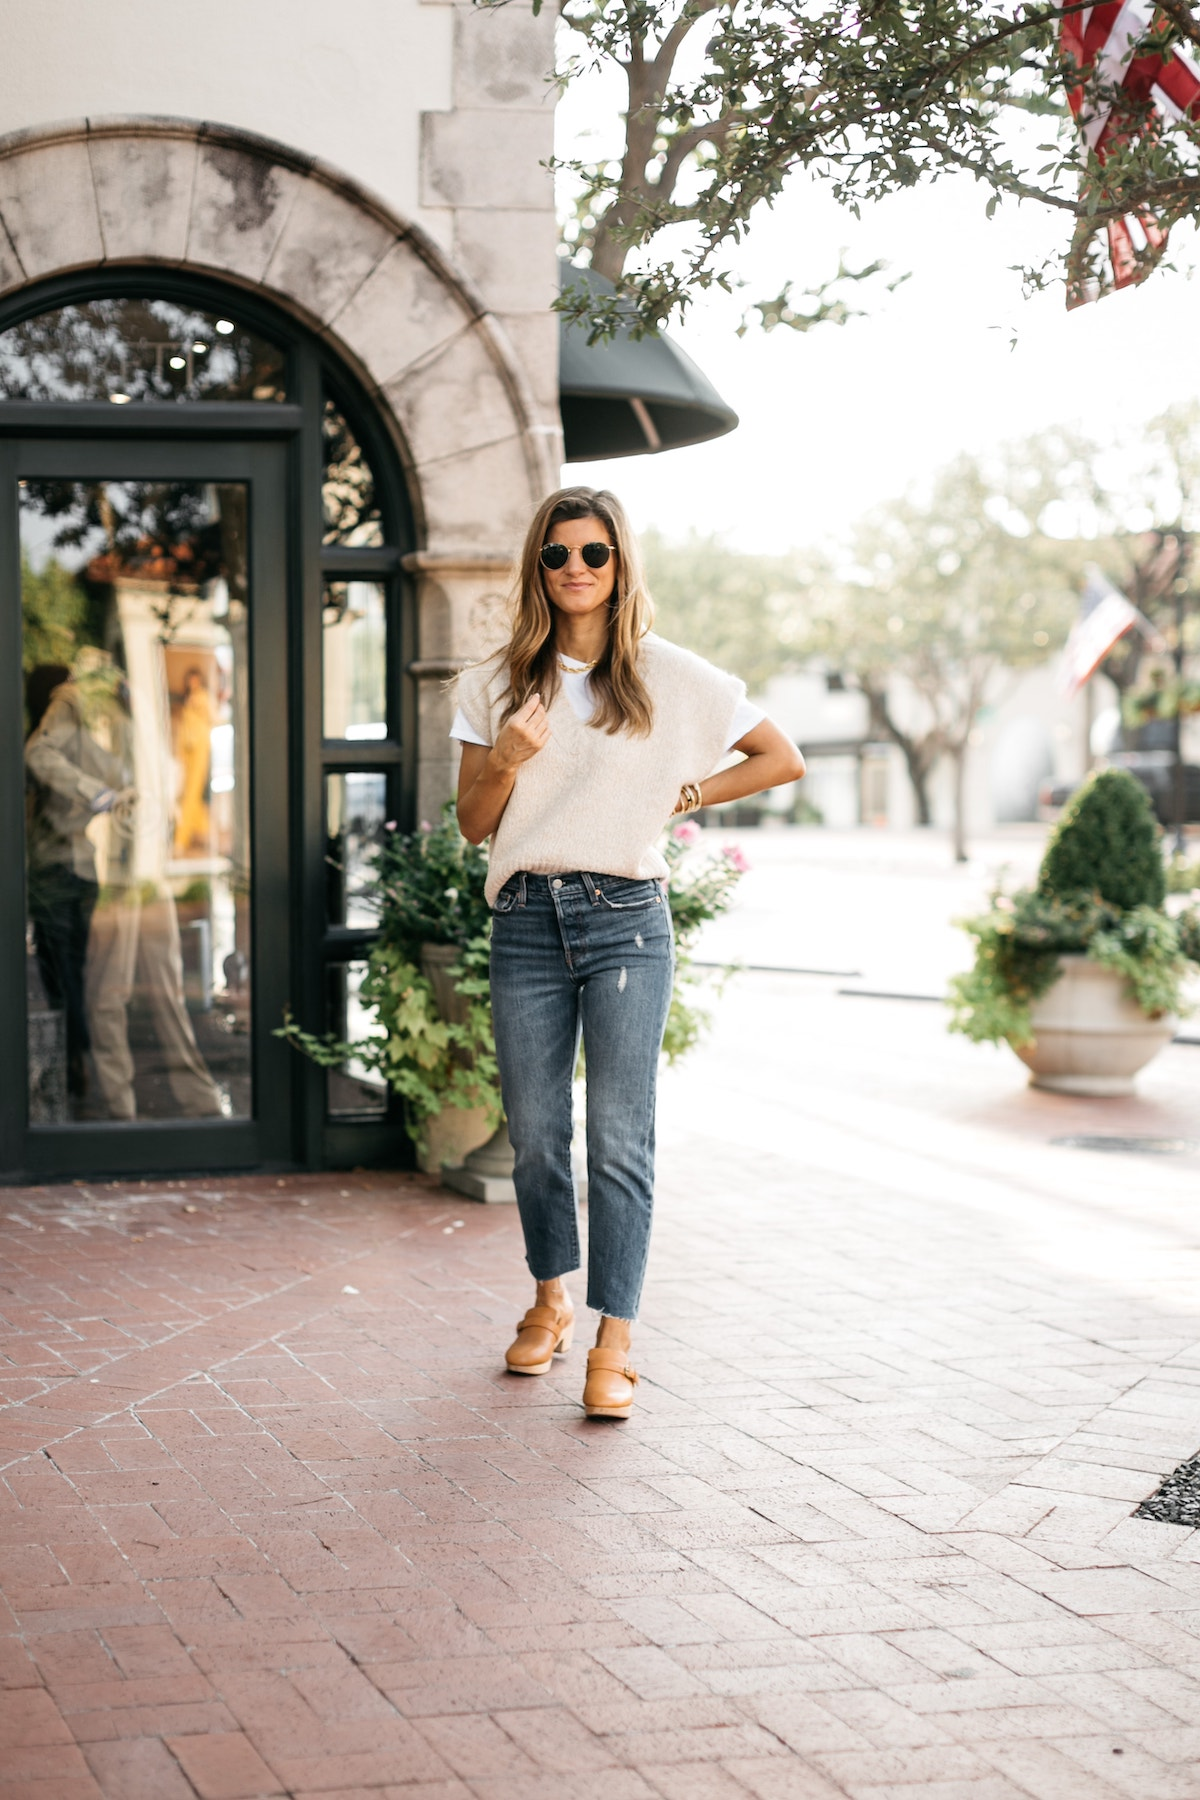 Brighton Butler wearing sweater vest layered over white tee, Levi's denim, clogs, sweater vest trend